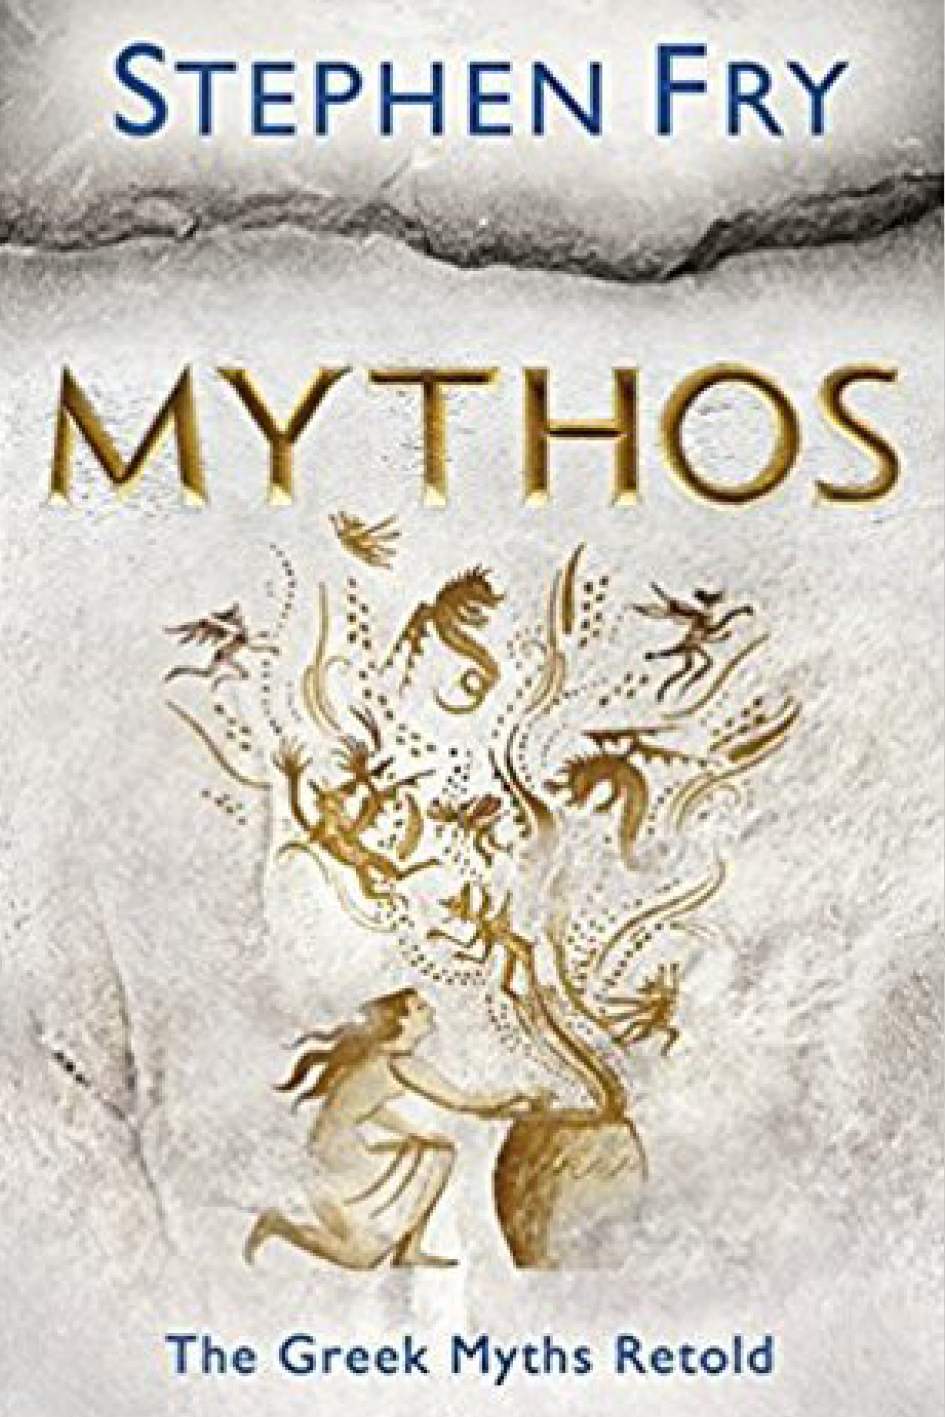 "Mythos: The Greek Myths Retold   ,   Stephen Fry   "" I have always been fascinated by Greek mythology, and Stephen Fry's retelling adds a witty, modern twist to these epic tales of old. (There's also the companion    Heroes    volume, which I still have to read). ""   Ana Oliveira,  Communications Manager"